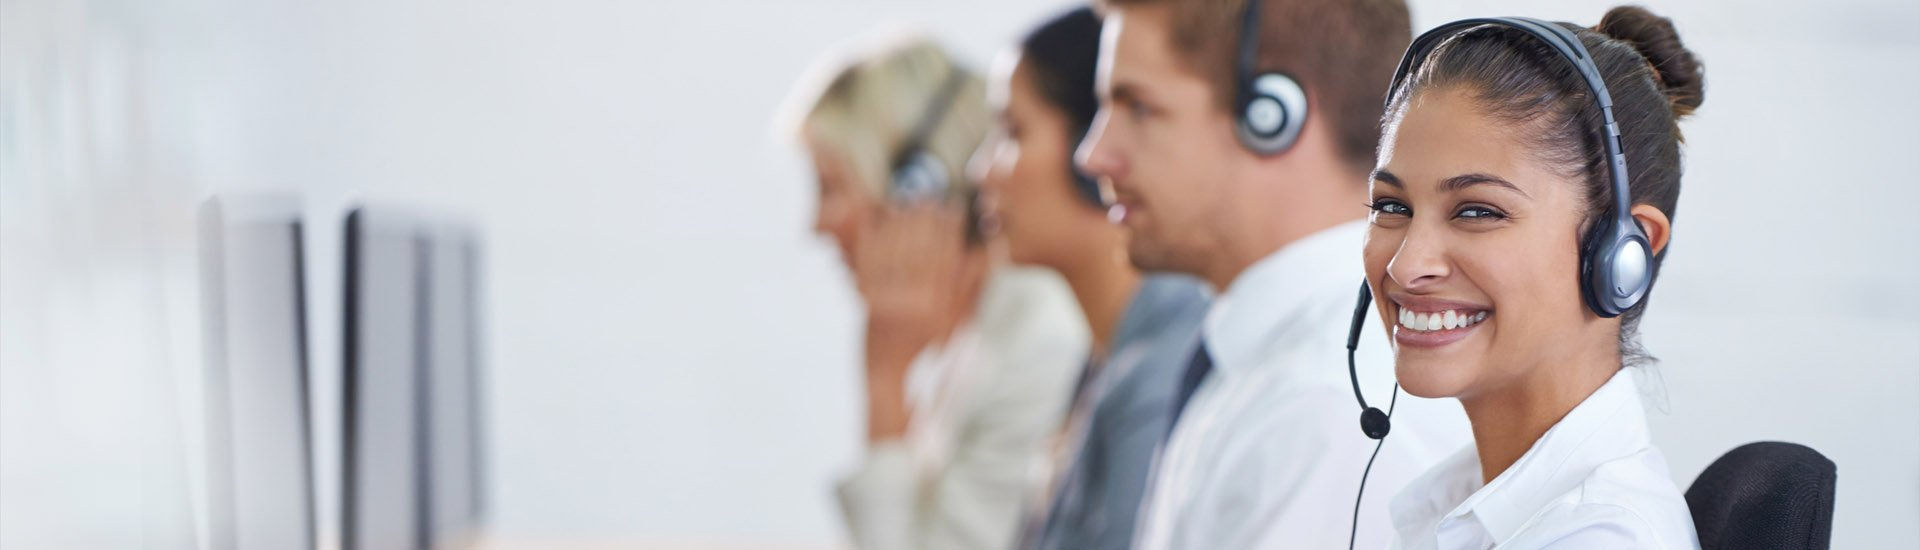 deliver master software customer support call centre